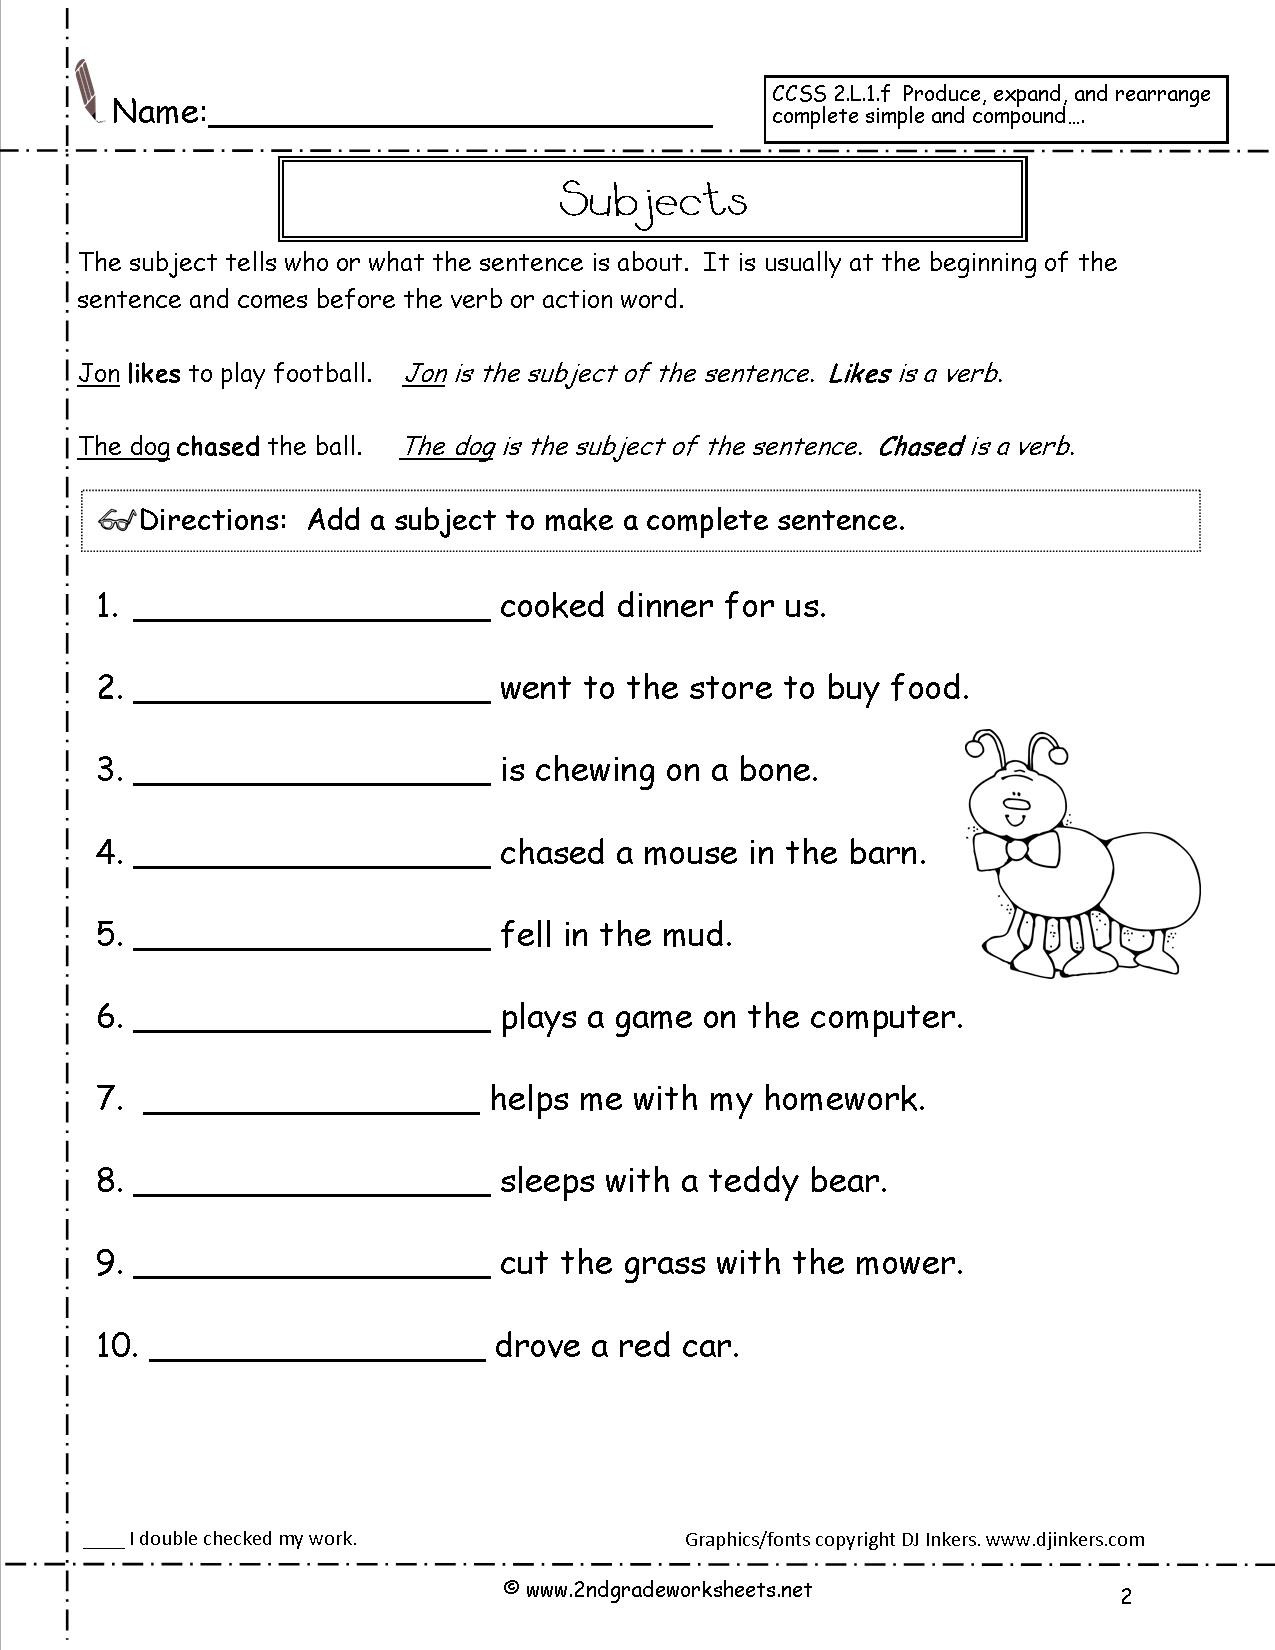 2nd Grade Writing Worksheets Pdf Basic Math Words Printable Cursive Worksheets 3rd Grade